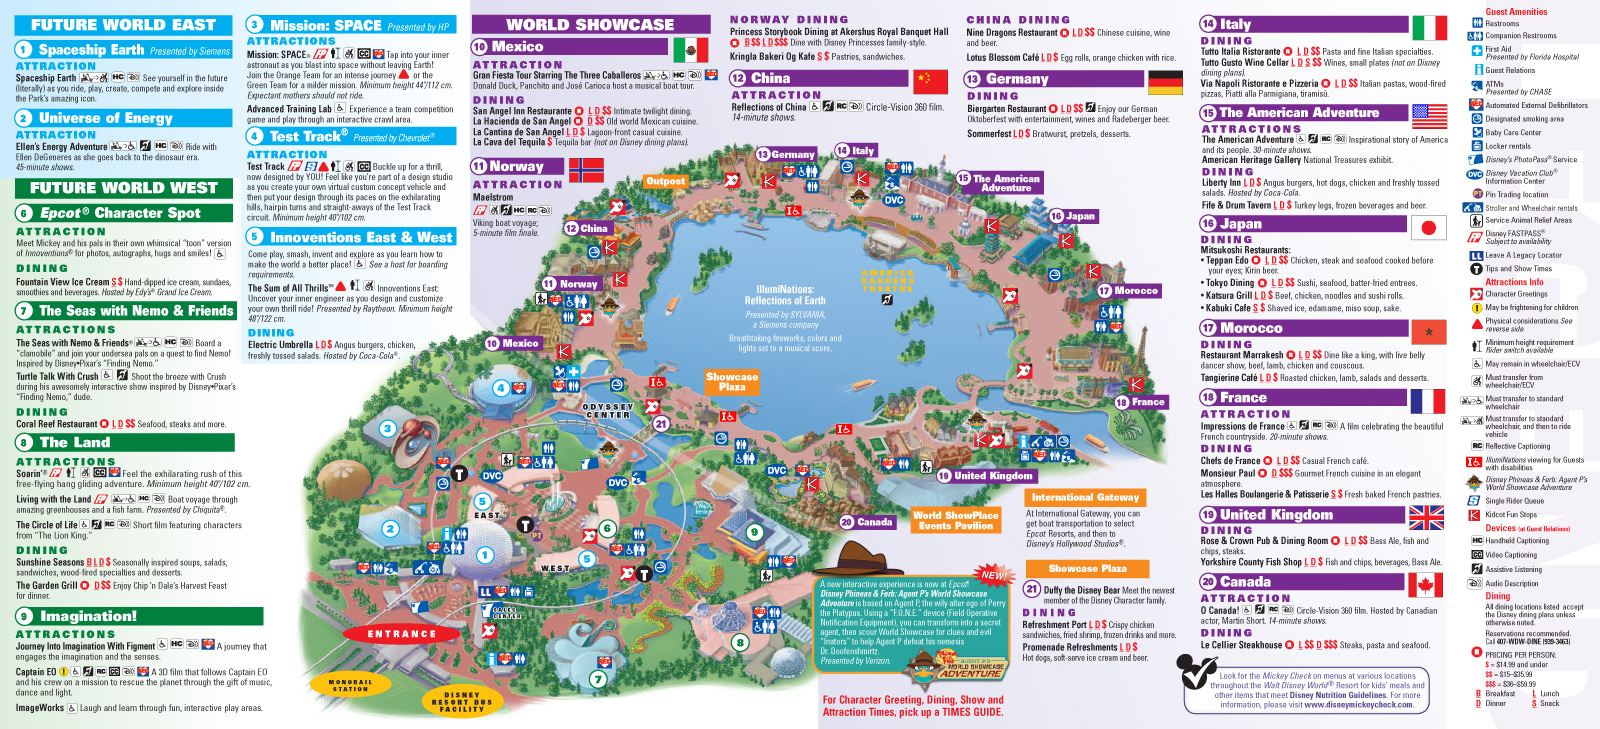 Park Maps 2013 - Photo 4 of 8